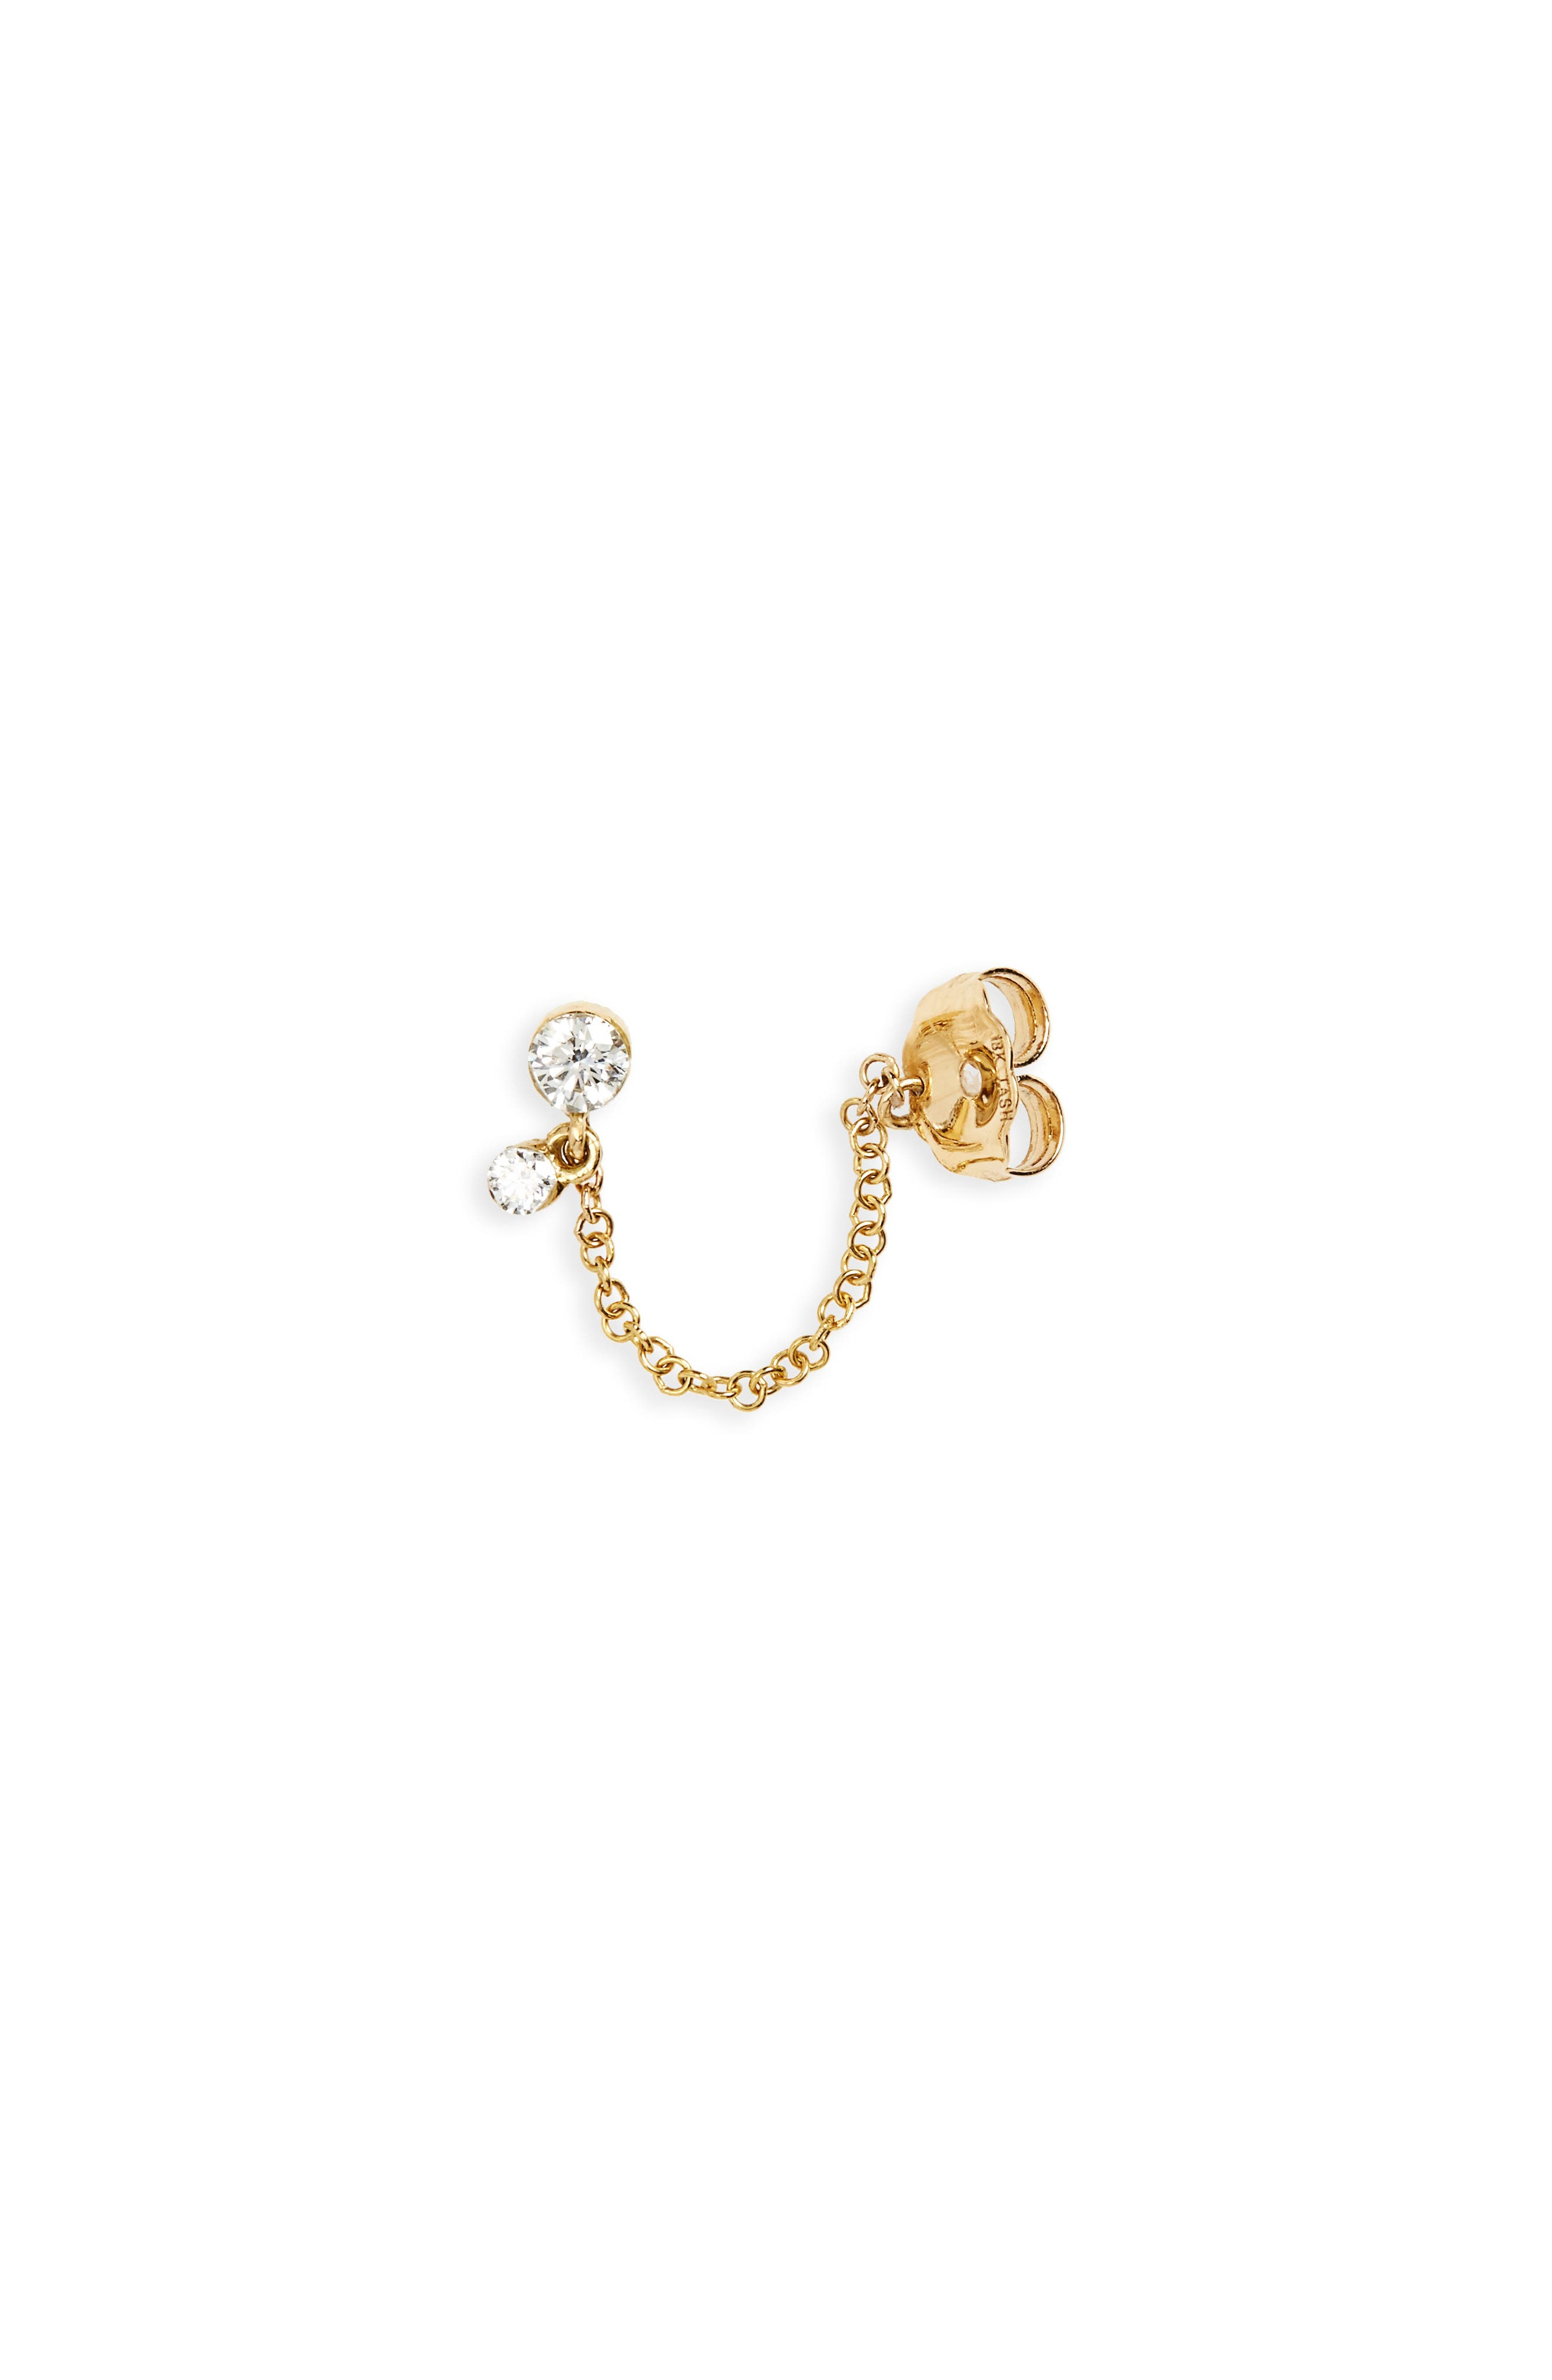 Invisibly Set Diamond Dangle & Chain Stud Earring,                         Main,                         color, Yellow Gold